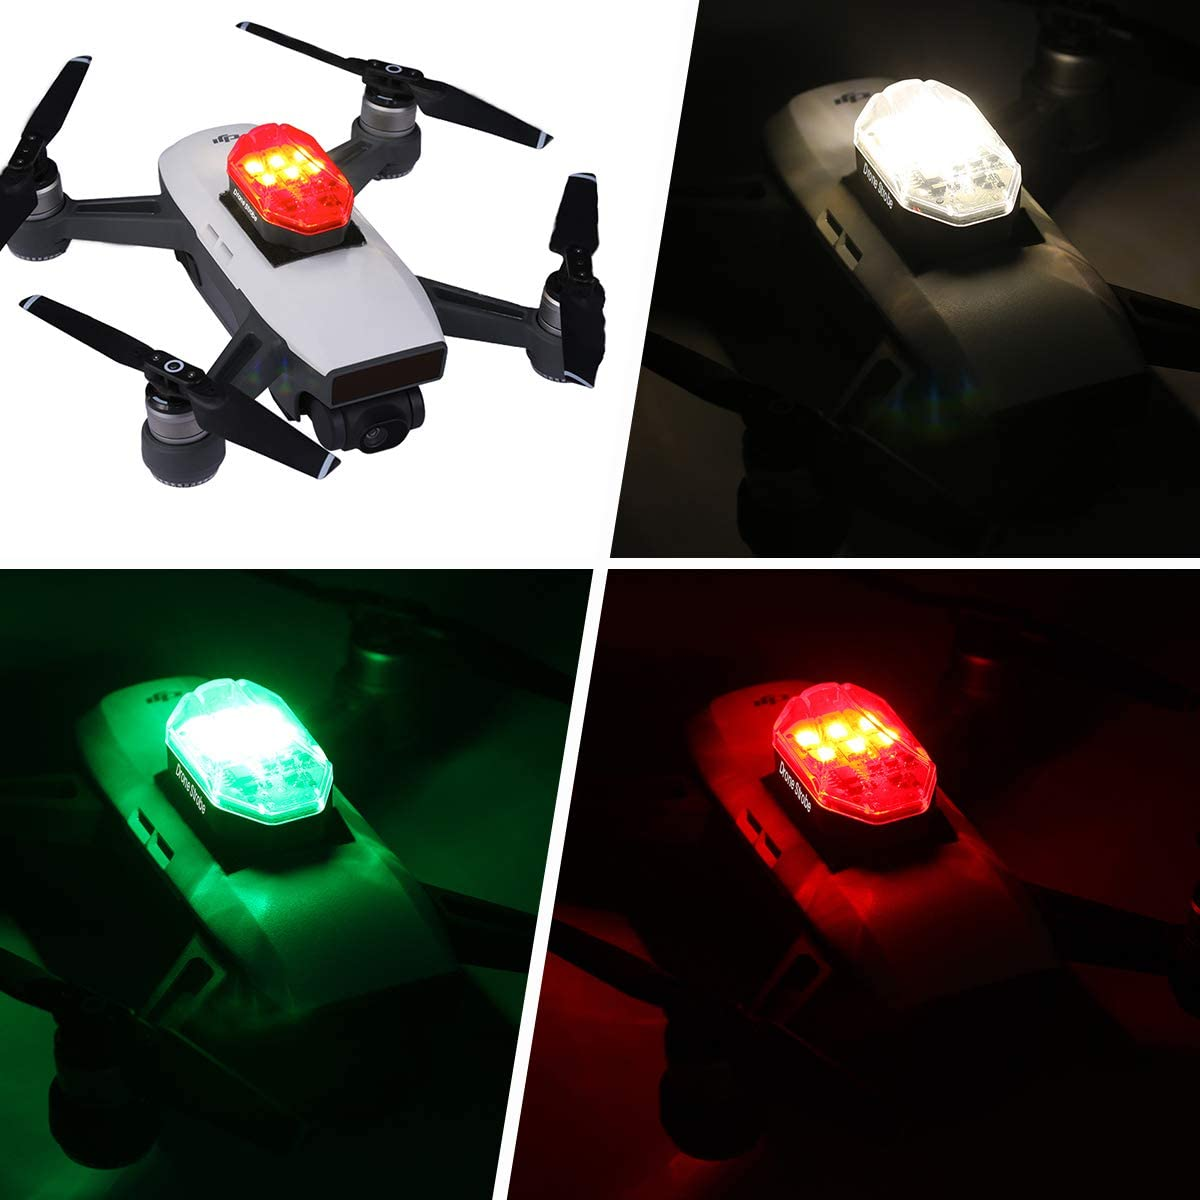 DR-01 ULANZI Drone Light for DJI Marvic 2 Pro Night Fly Visible RGB Drone Accessories 3 Mode Anti-Collision Strobe Lighting 250mAh Rechargeable